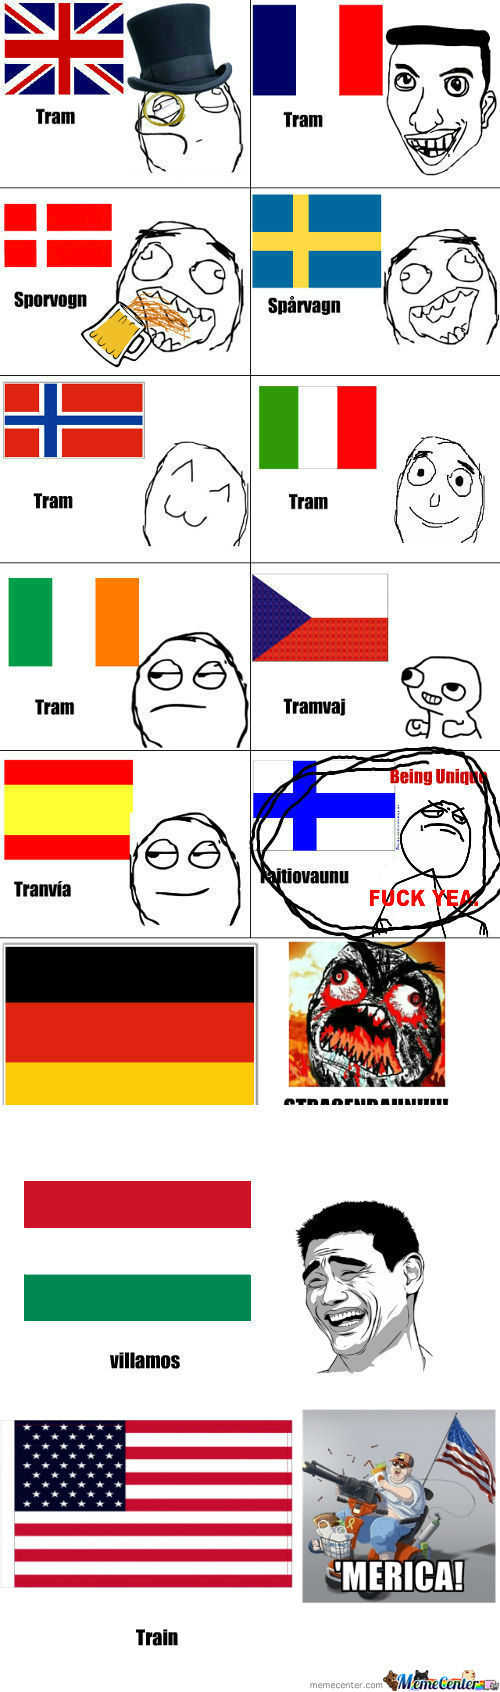 [RMX] [RMX] [RMX] Tram In Different Languages